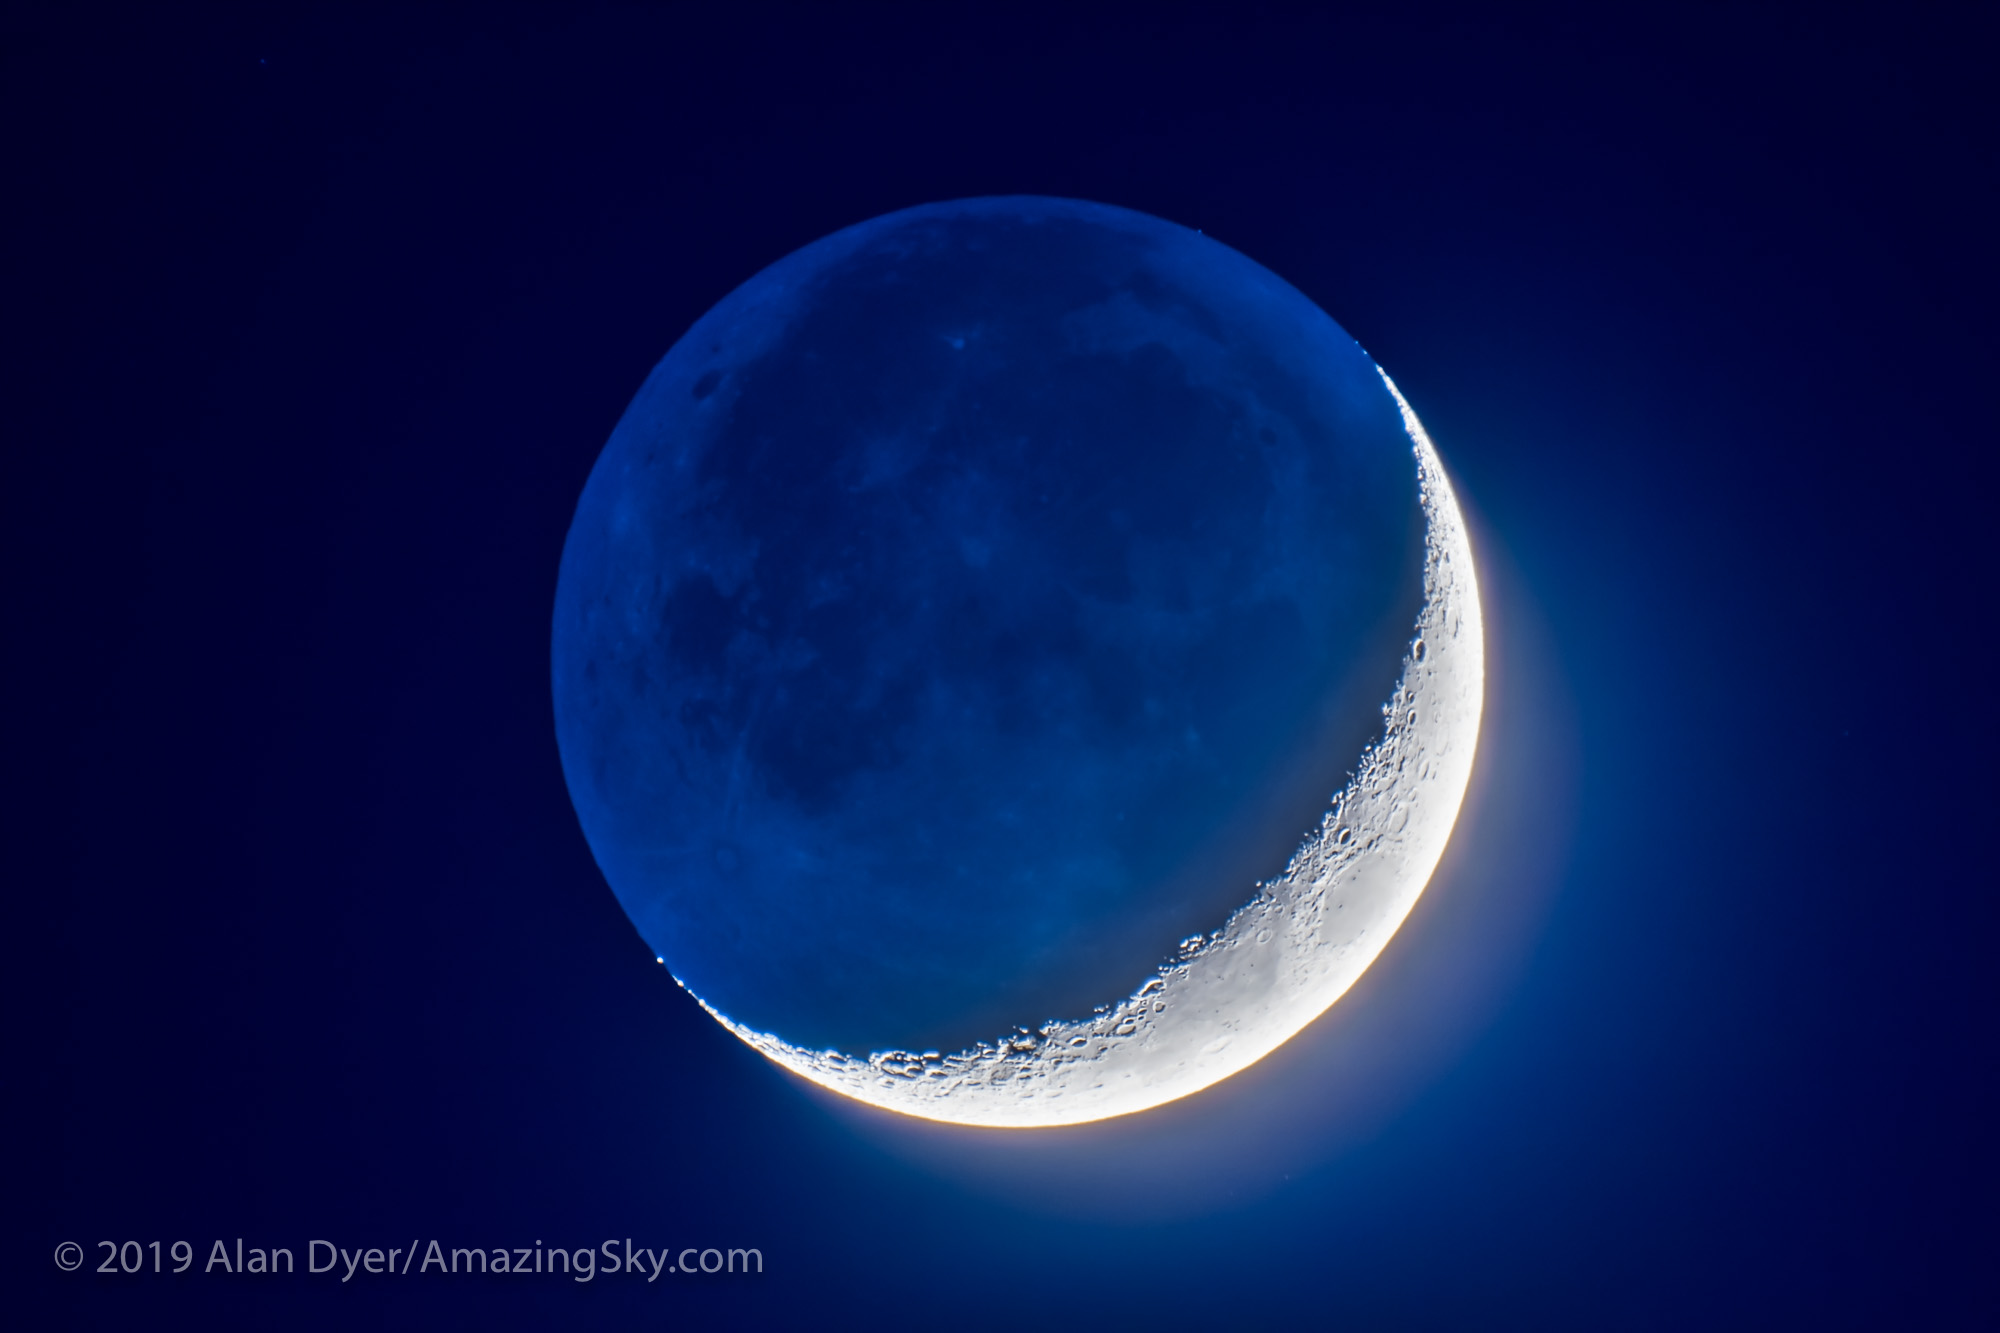 Four-Day-Old Moon with Earthshine